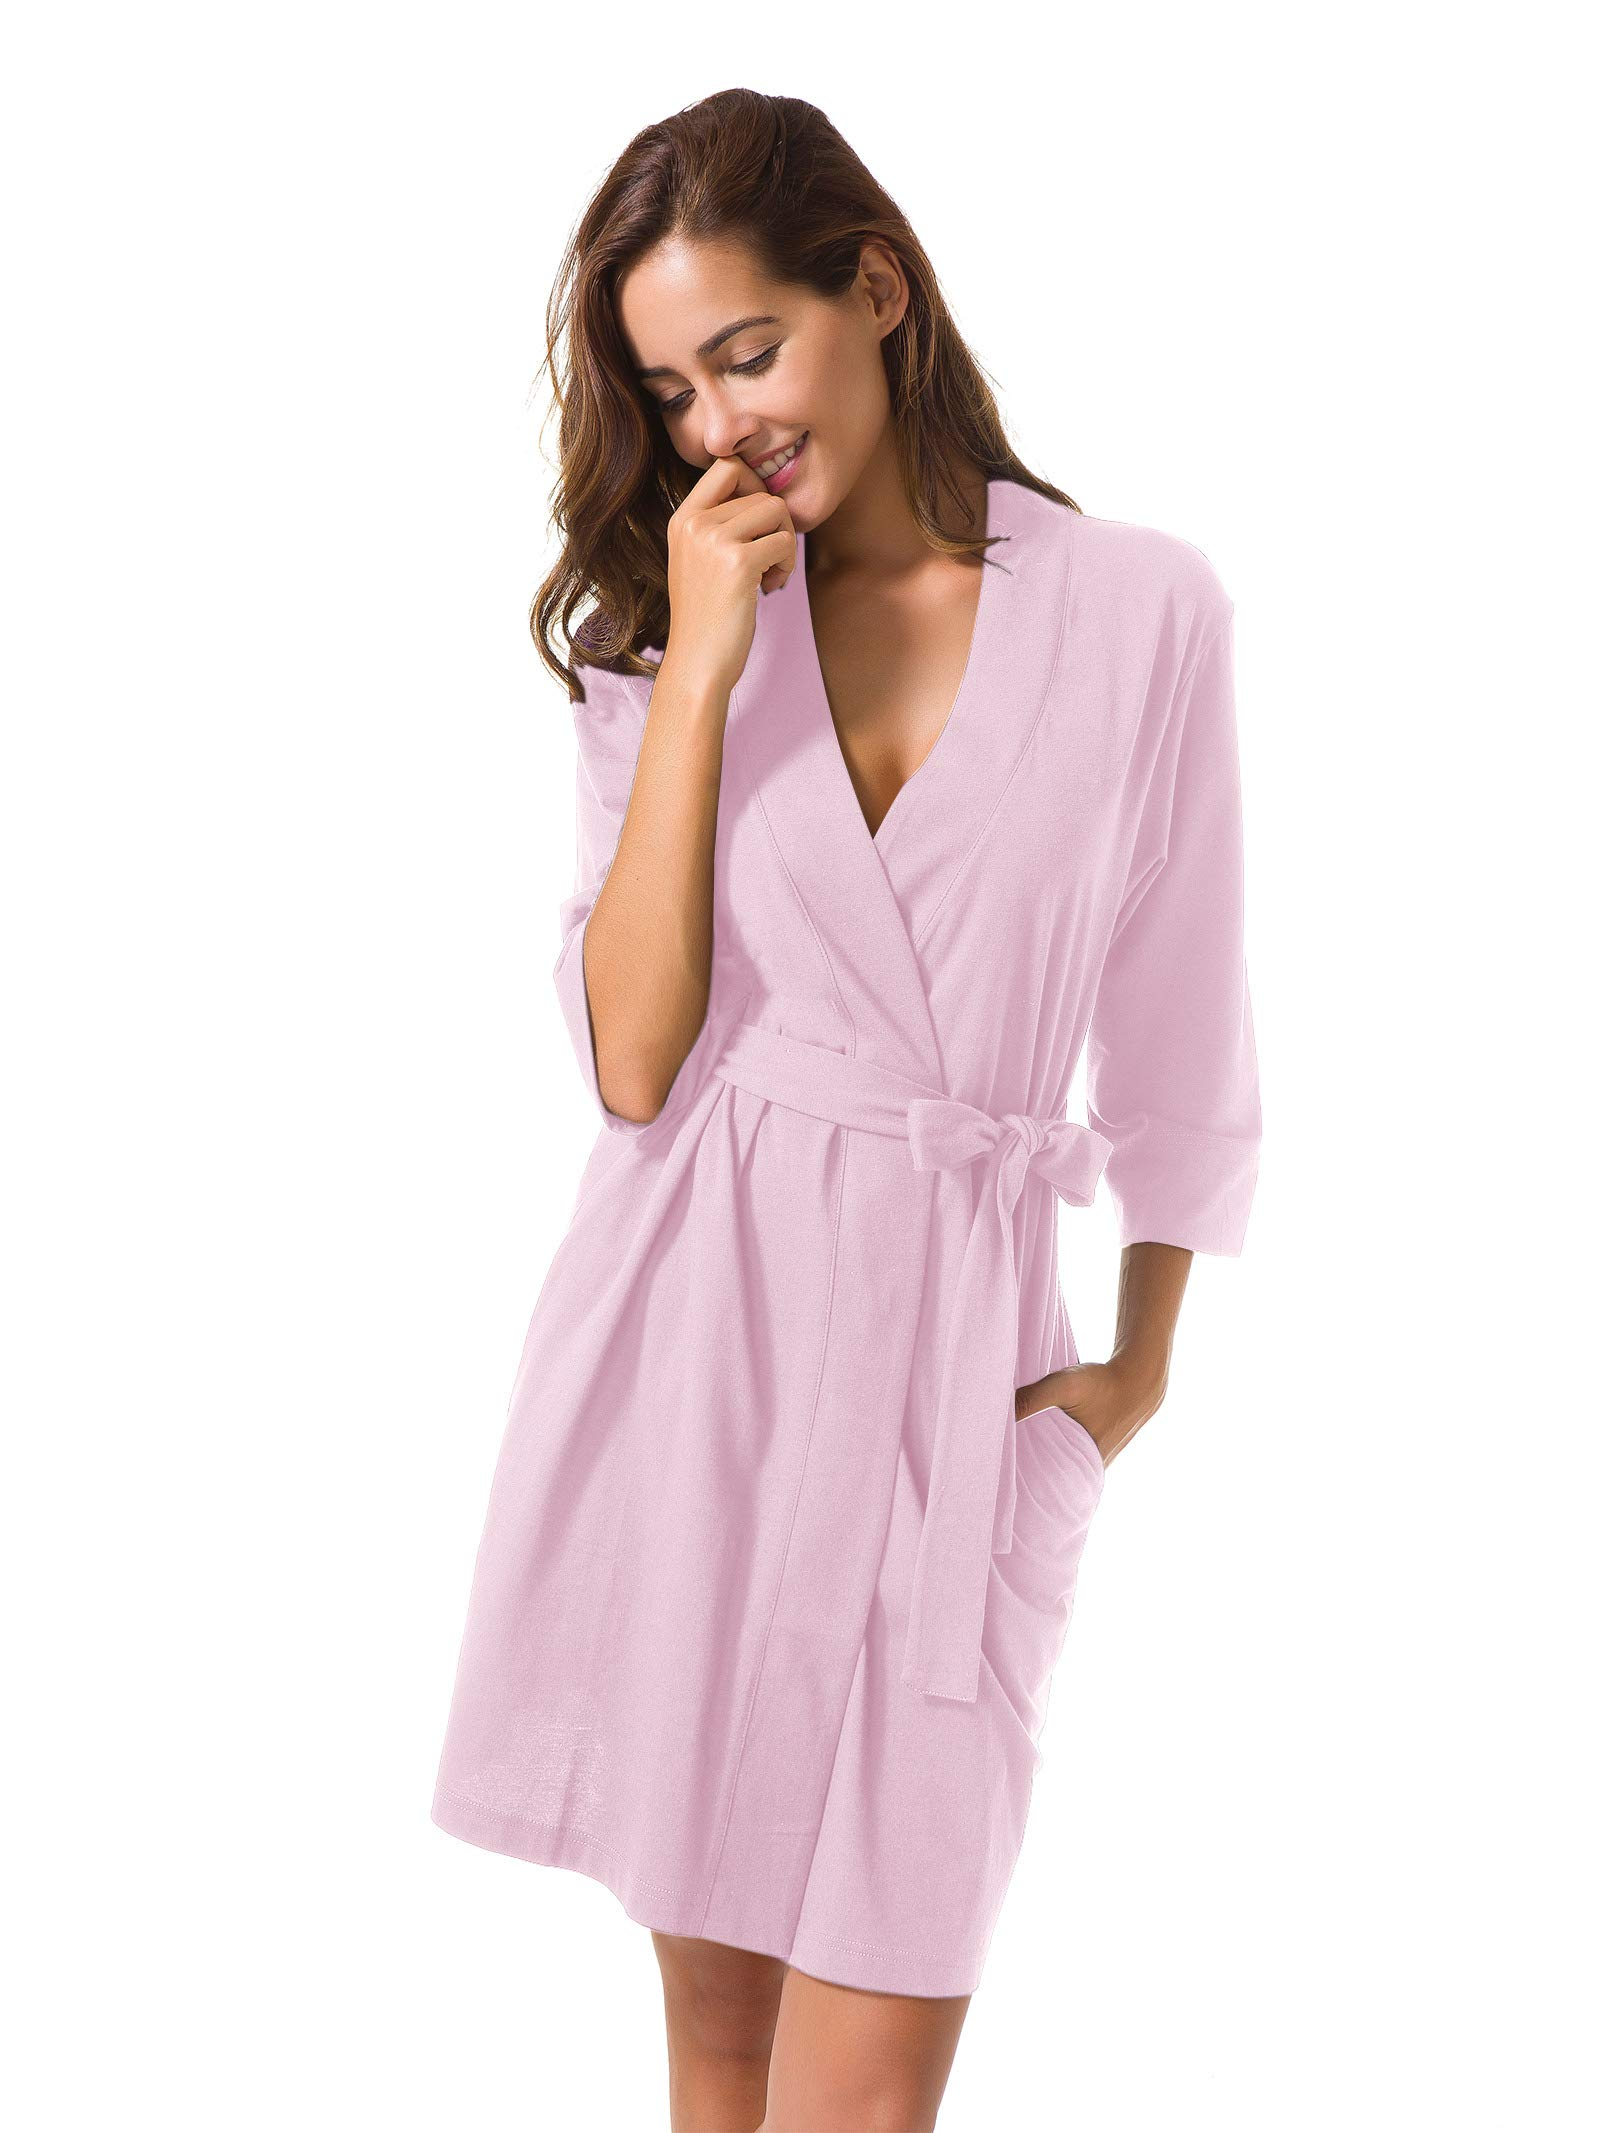 Galleon - SIORO Cotton Robes Lightweight Kimono Robe Gowns Soft Knit  Bathrobe Nightwear V-Neck Loungewear Sexy Sleepwear Short For Women Pink L 6c3fb0442